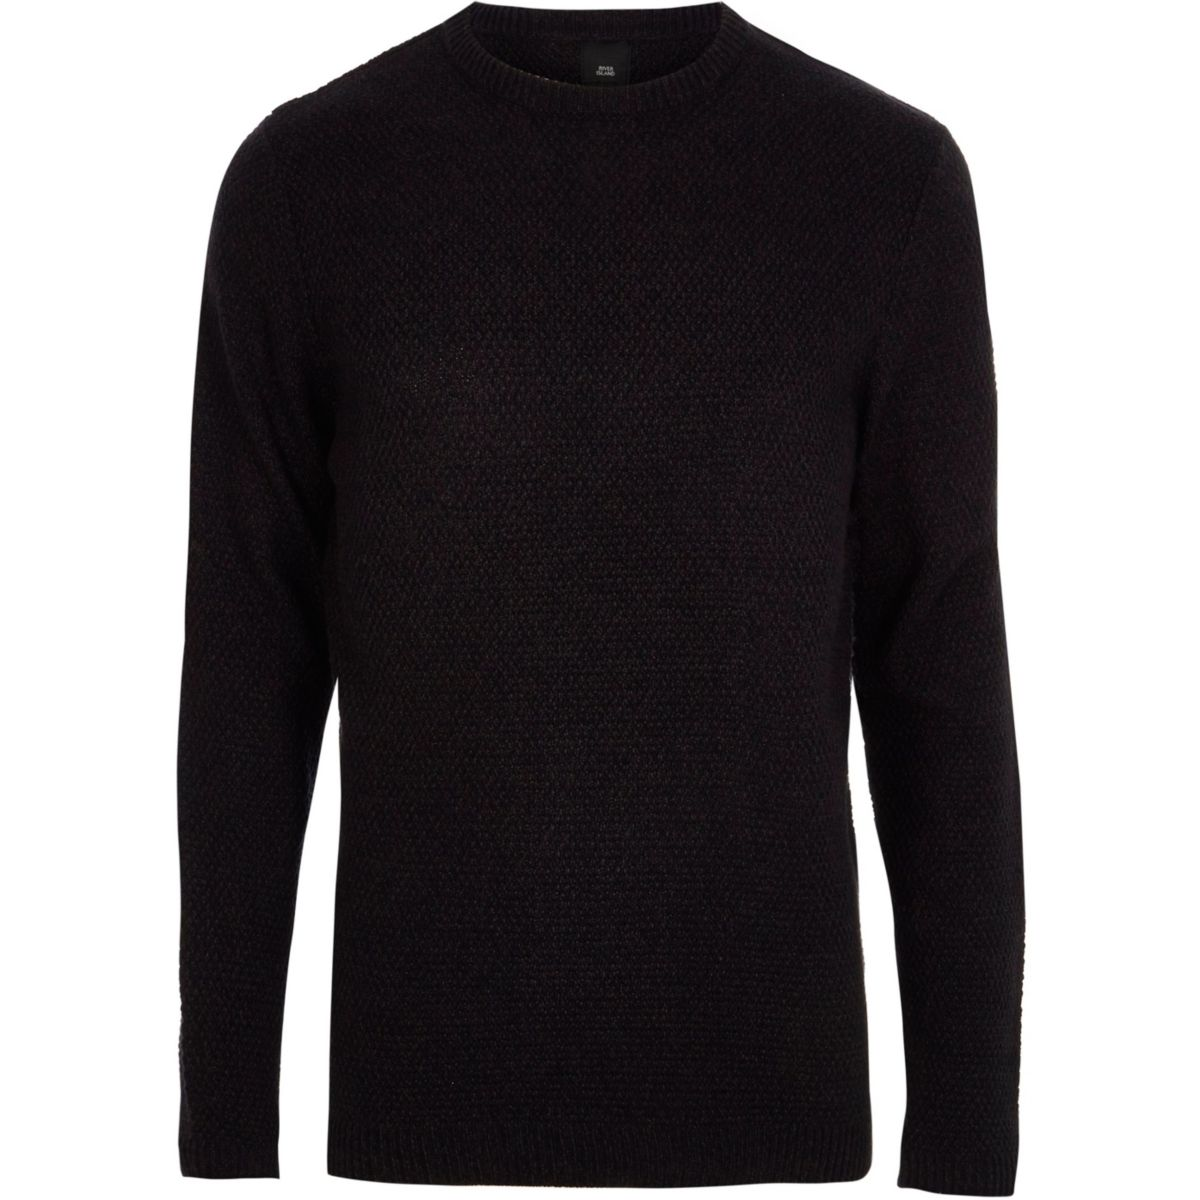 Big and Tall navy textured crew neck jumper